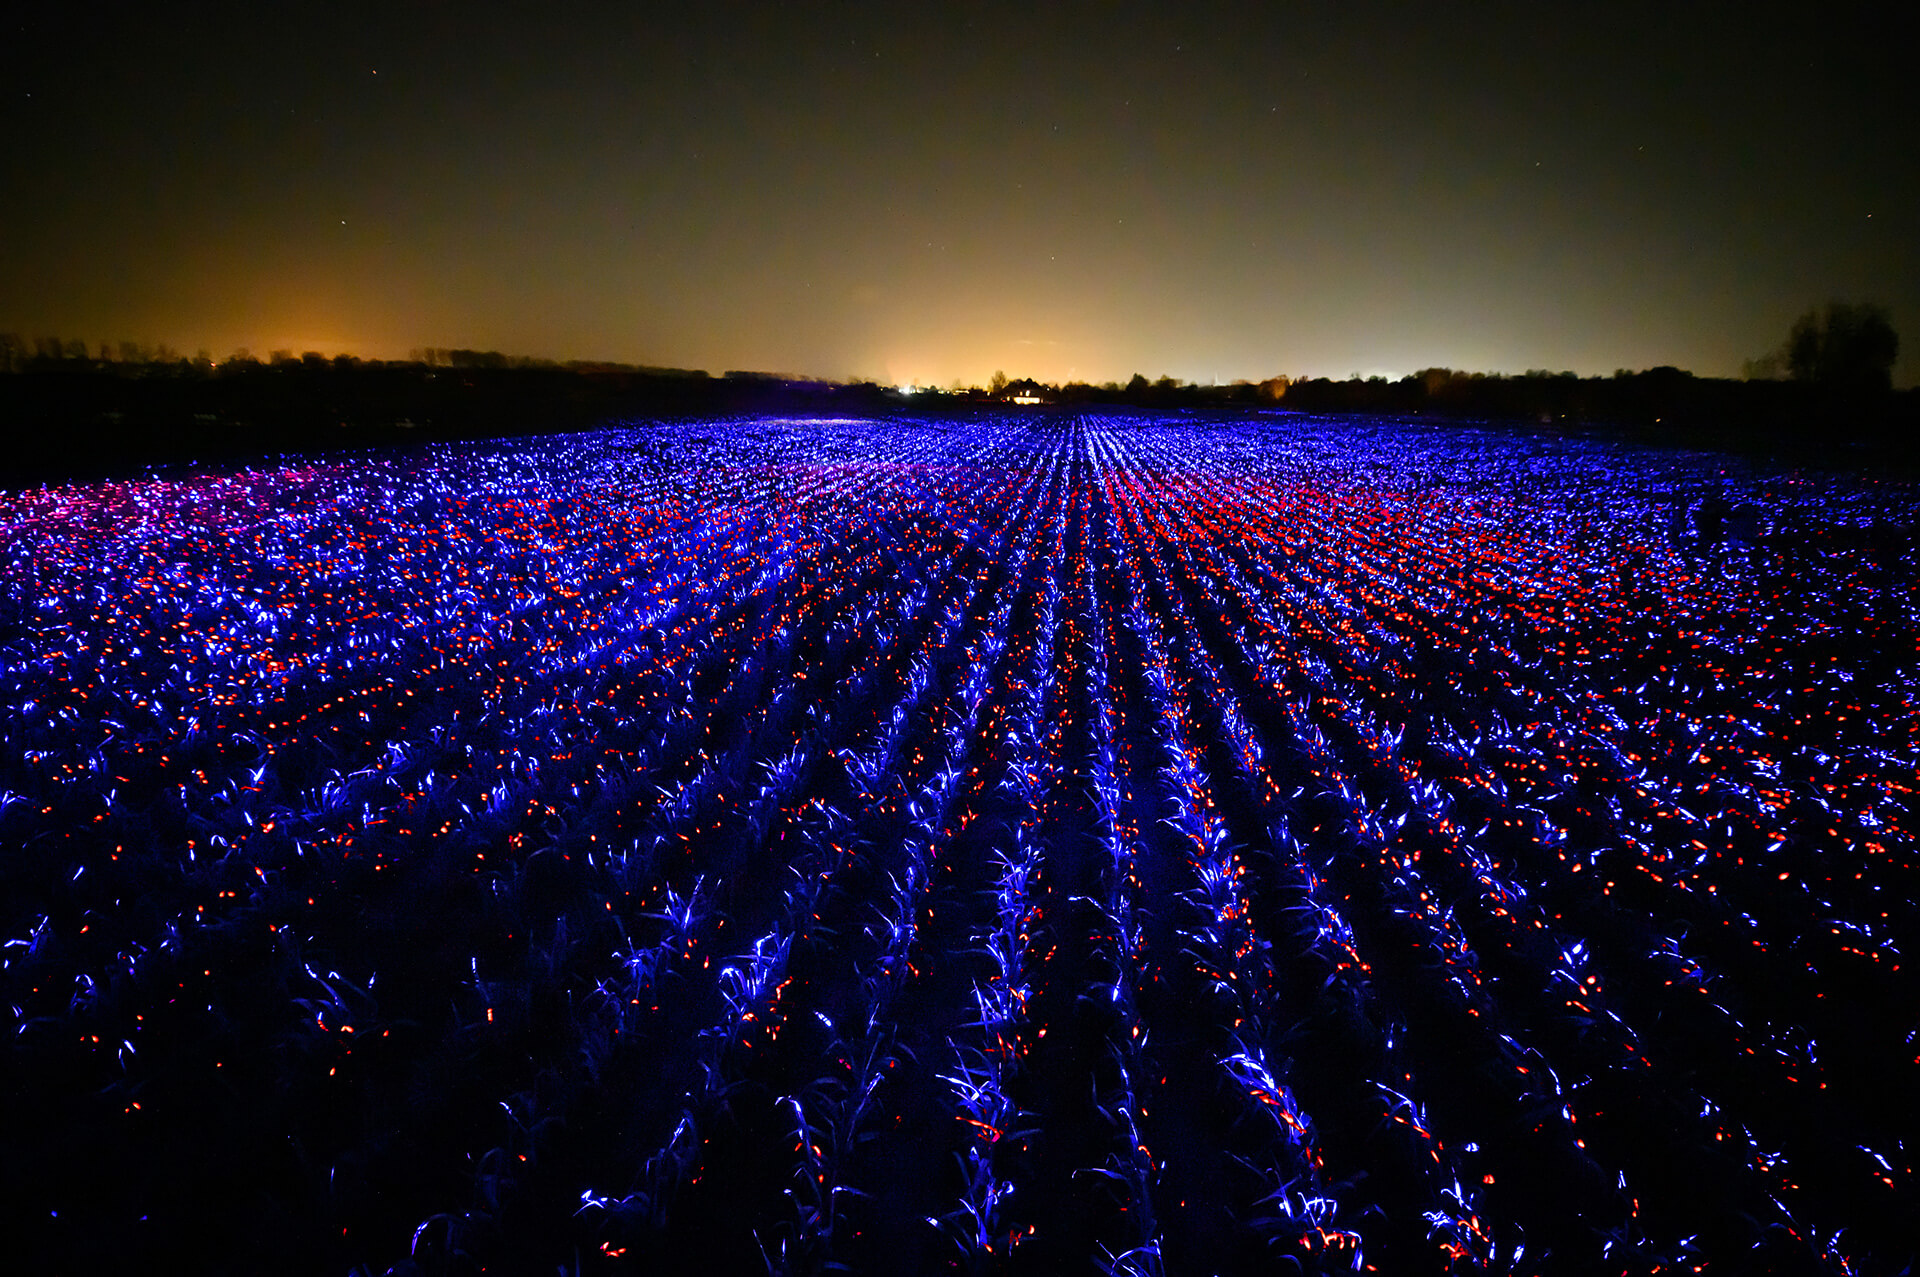 Red and blue ultraviolet lights dance across a 20,000 sqm Dutch farmland | Grow by Daan Roosegaarde | STIRworld